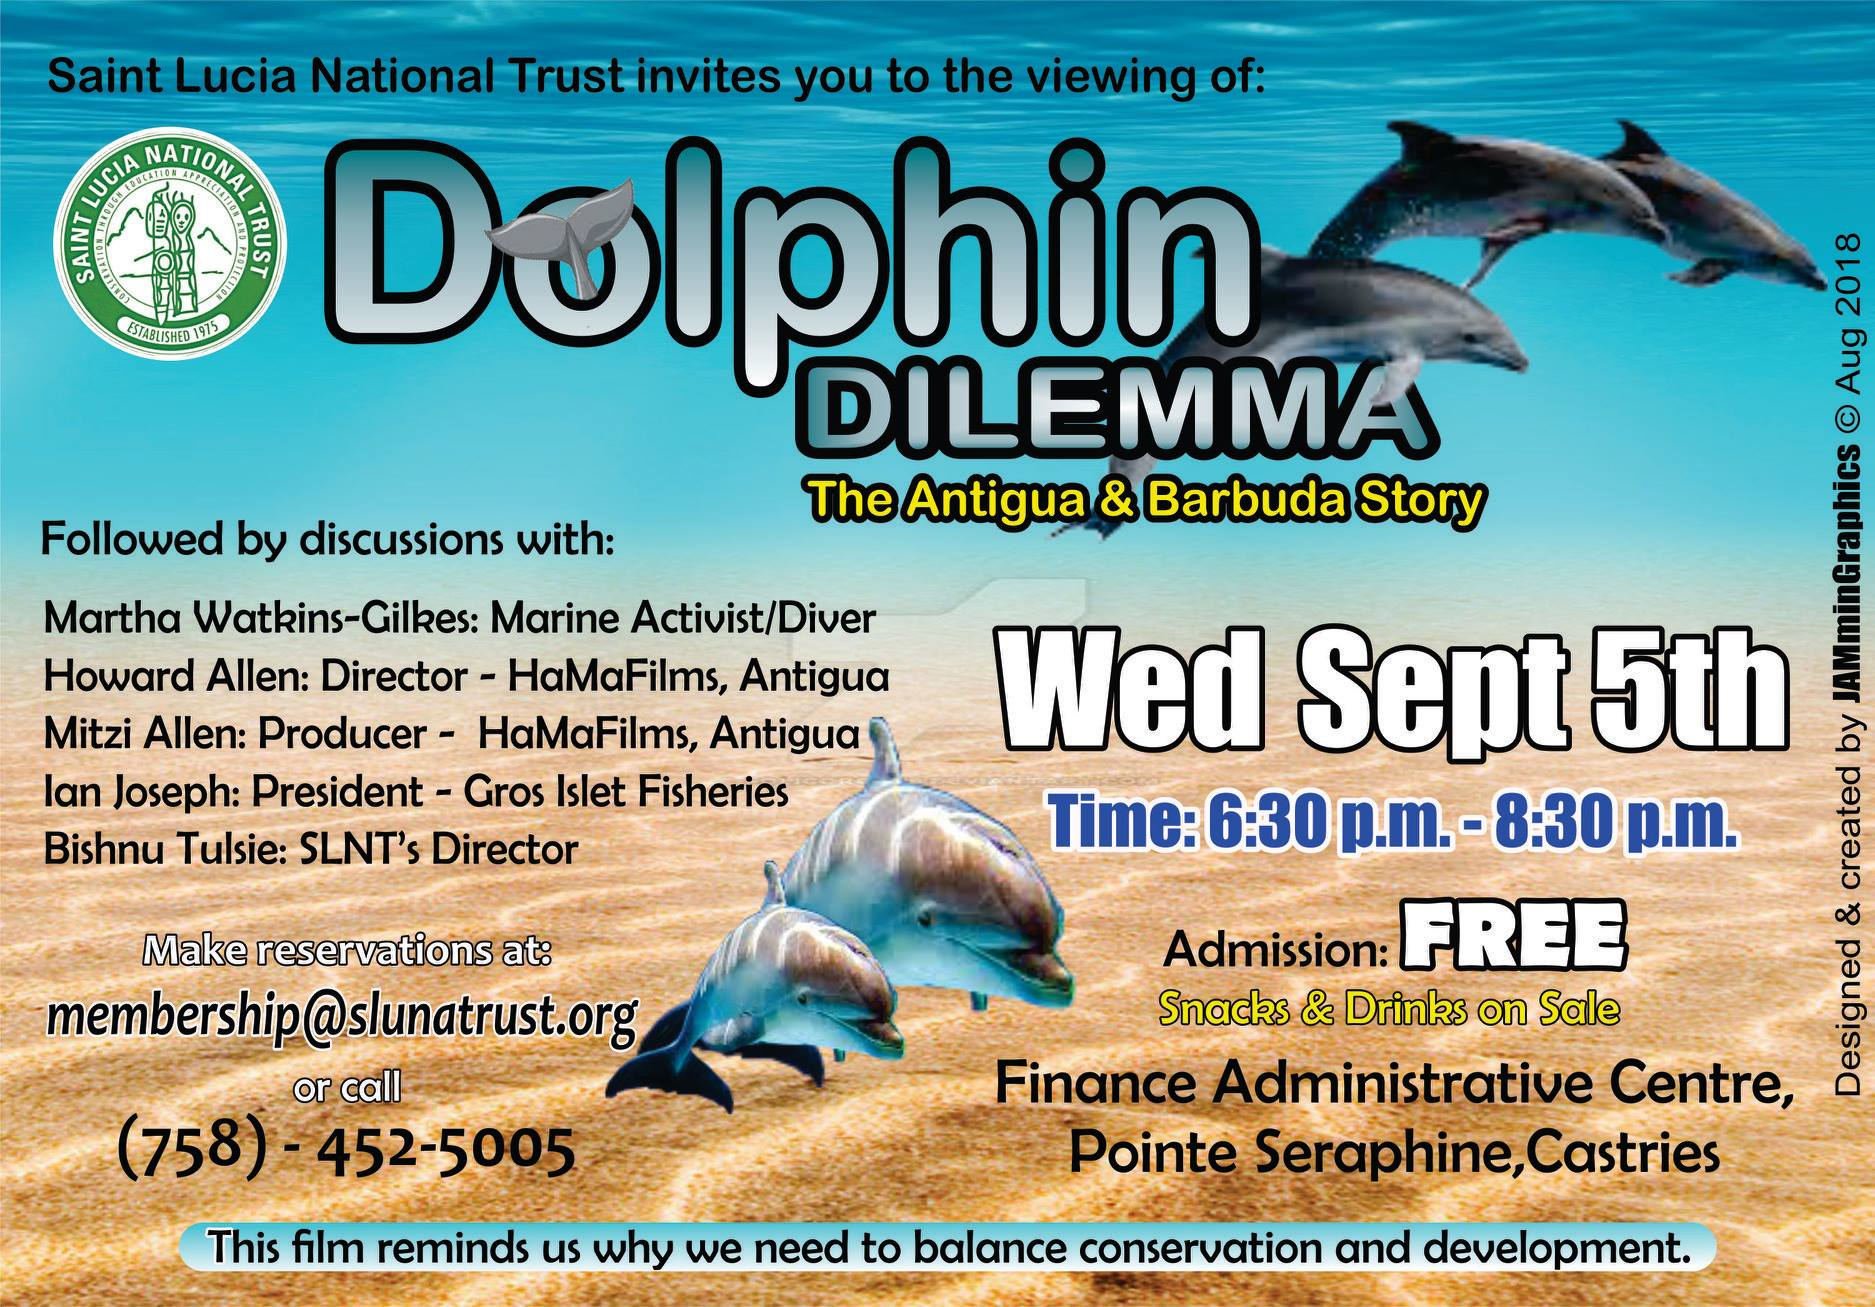 conservation vs development - free movie about antigua and barbuda's struggle with a dolphinarium